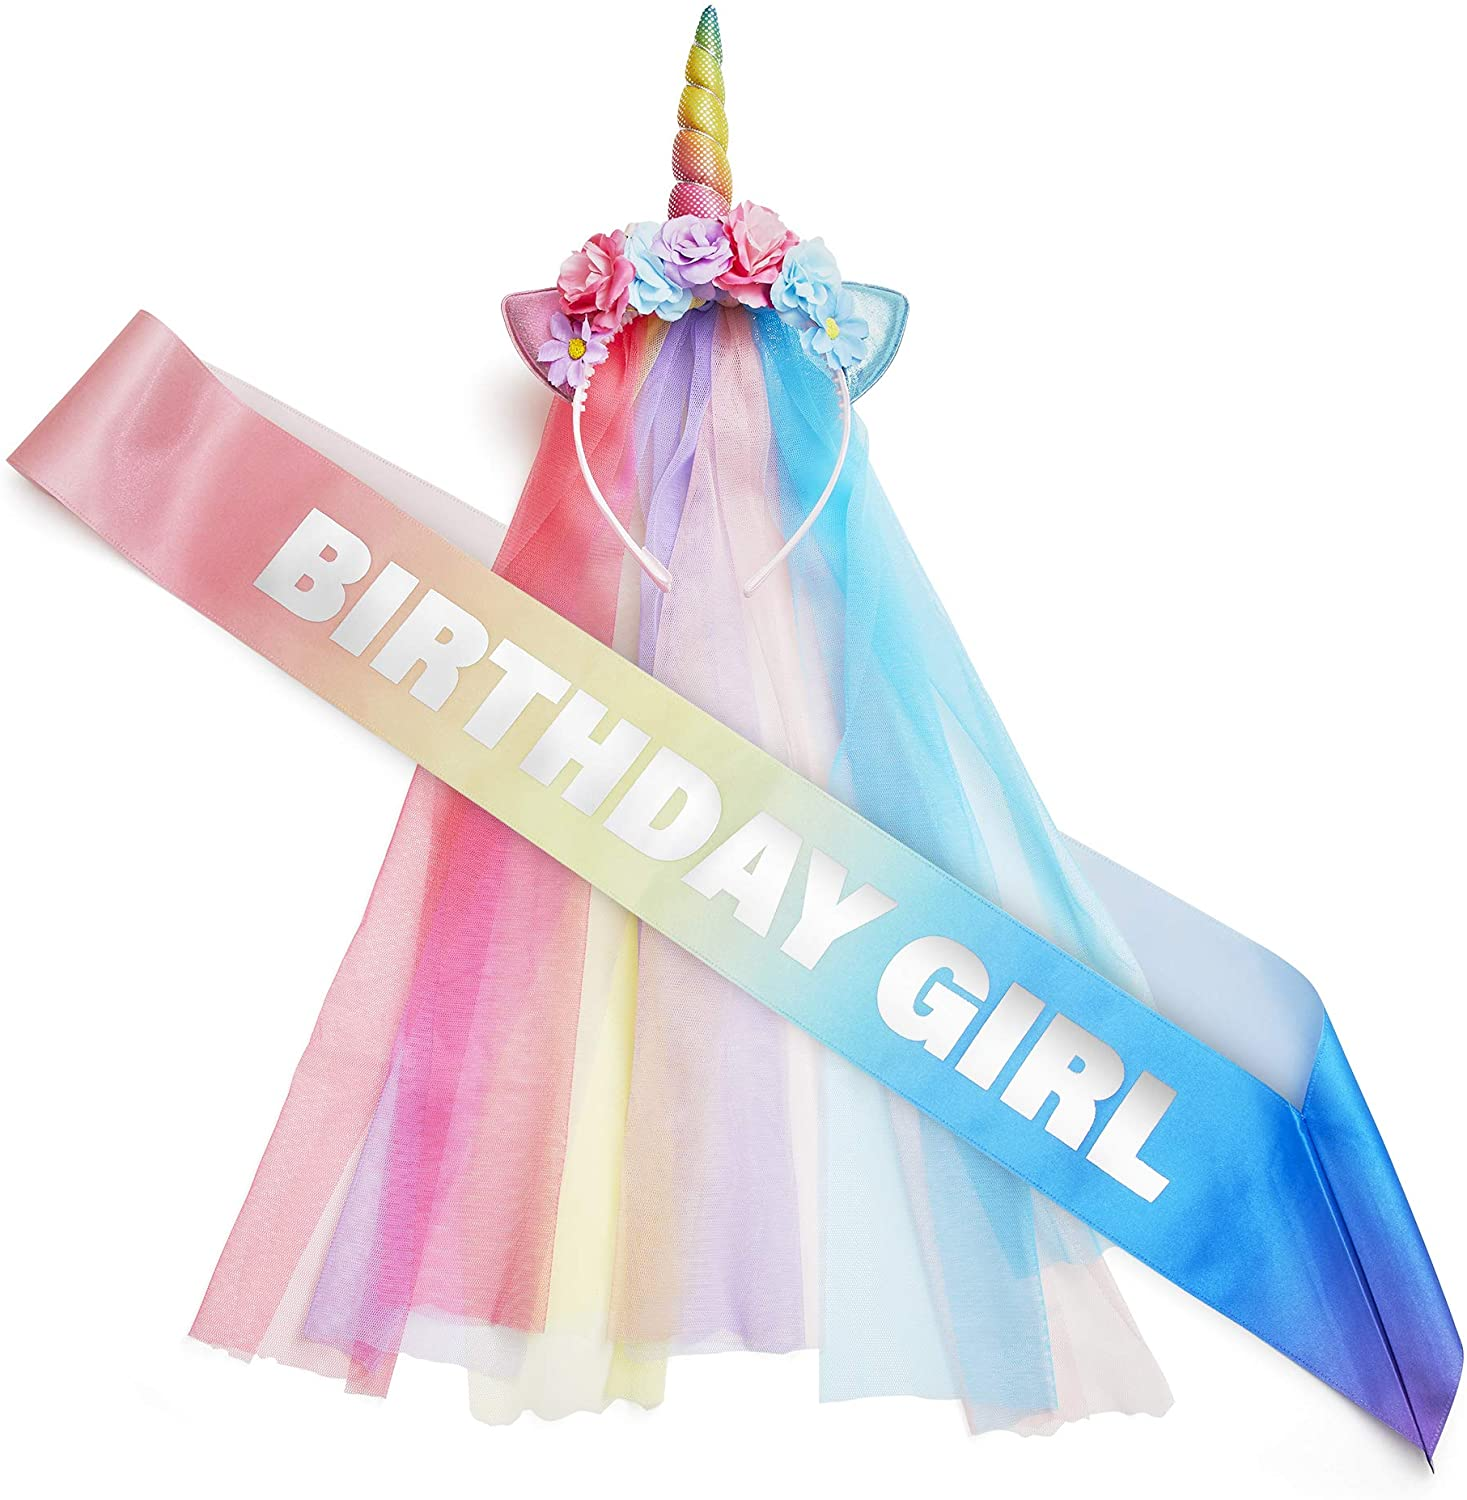 Rainbow Unicorn Party Supplies - Headband and Sash for Girls - Themed Costume Outfit for Bachelorette, Birthday - Colorful, Magical Unicorn Party Favors for Adults and Children